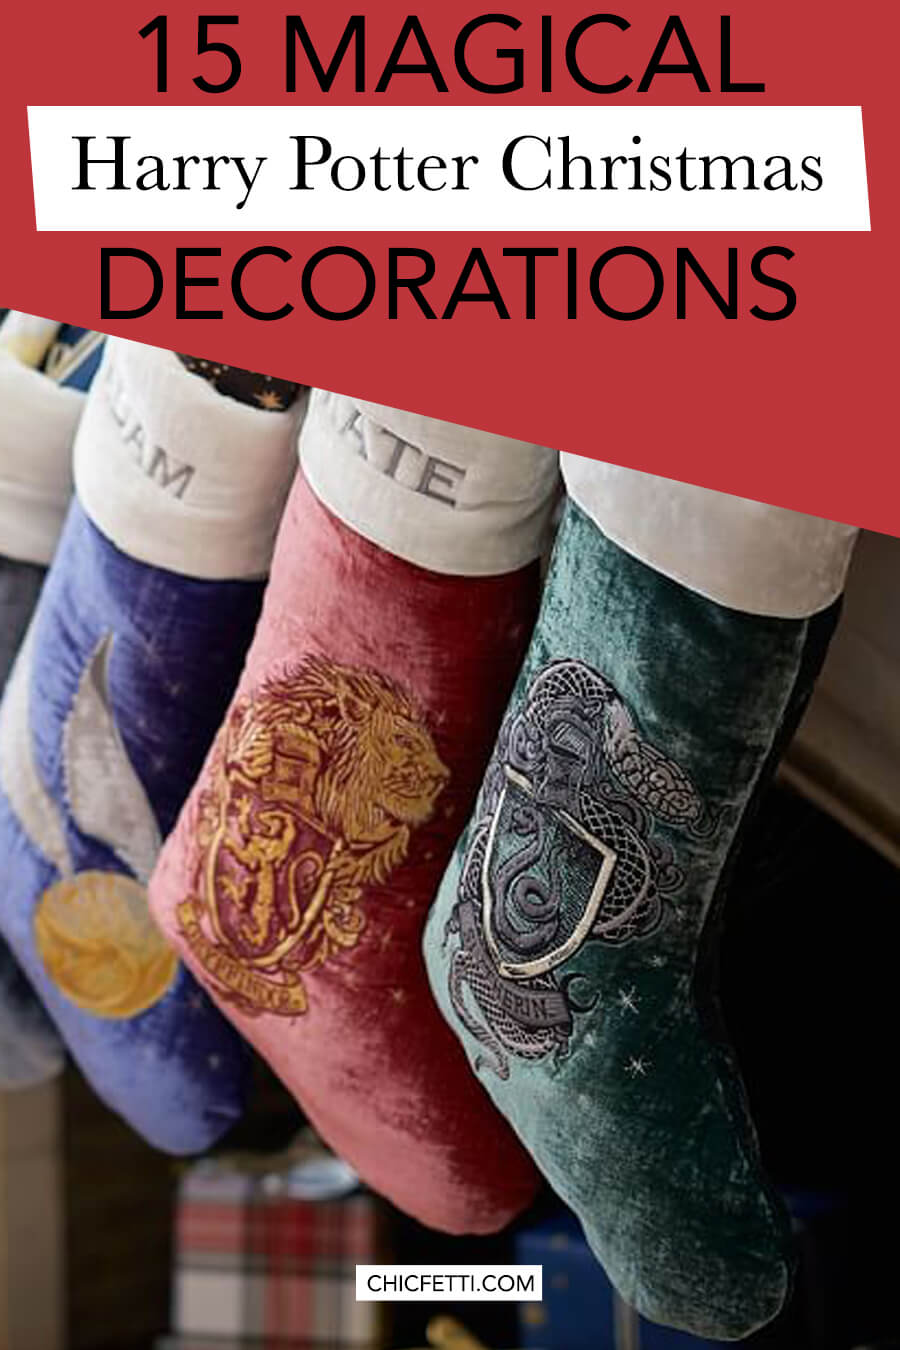 15 Magical Harry Potter Christmas Decorations - decorate your home with Harry Potter themed Christmas decorations including Harry Potter Ornaments for your Harry Potter Christmas tree #harrypotter #christmas #christmasideas #christmastheme #harrypotterchristmas #christmasdecor #christmasdecorations